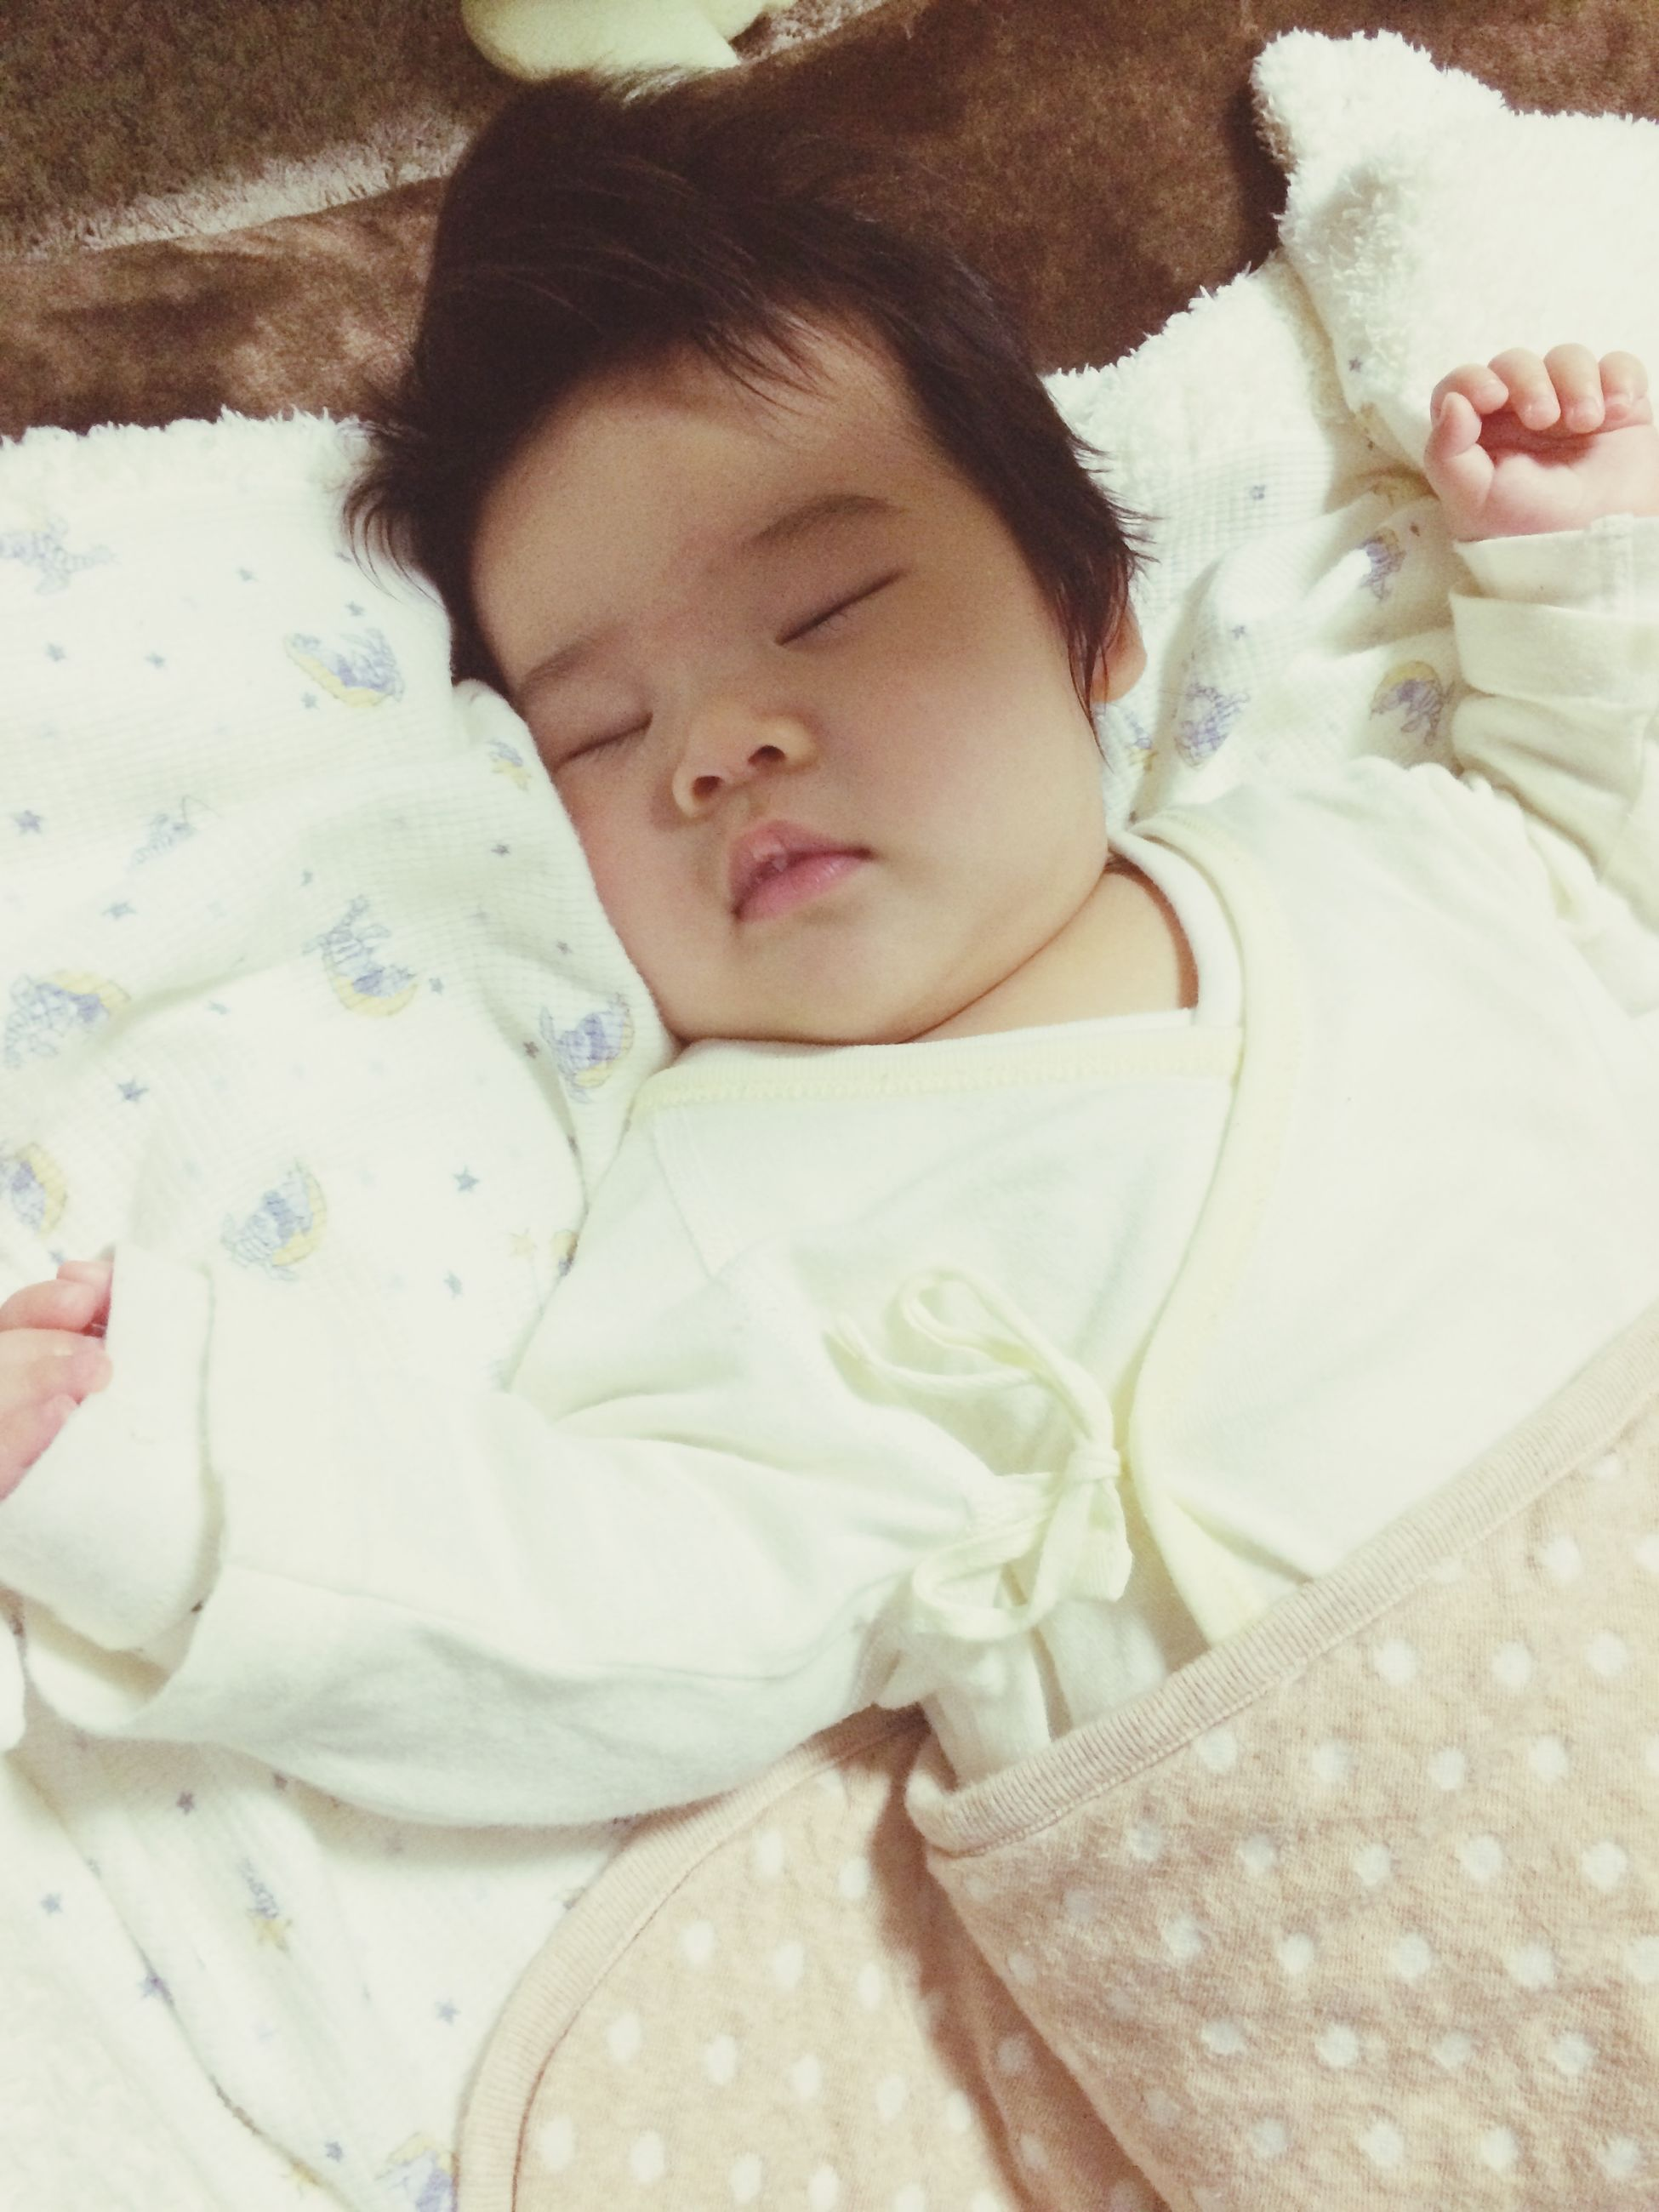 indoors, bed, relaxation, sleeping, cute, childhood, innocence, lying down, babyhood, baby, toddler, bedroom, person, resting, home interior, blanket, pillow, eyes closed